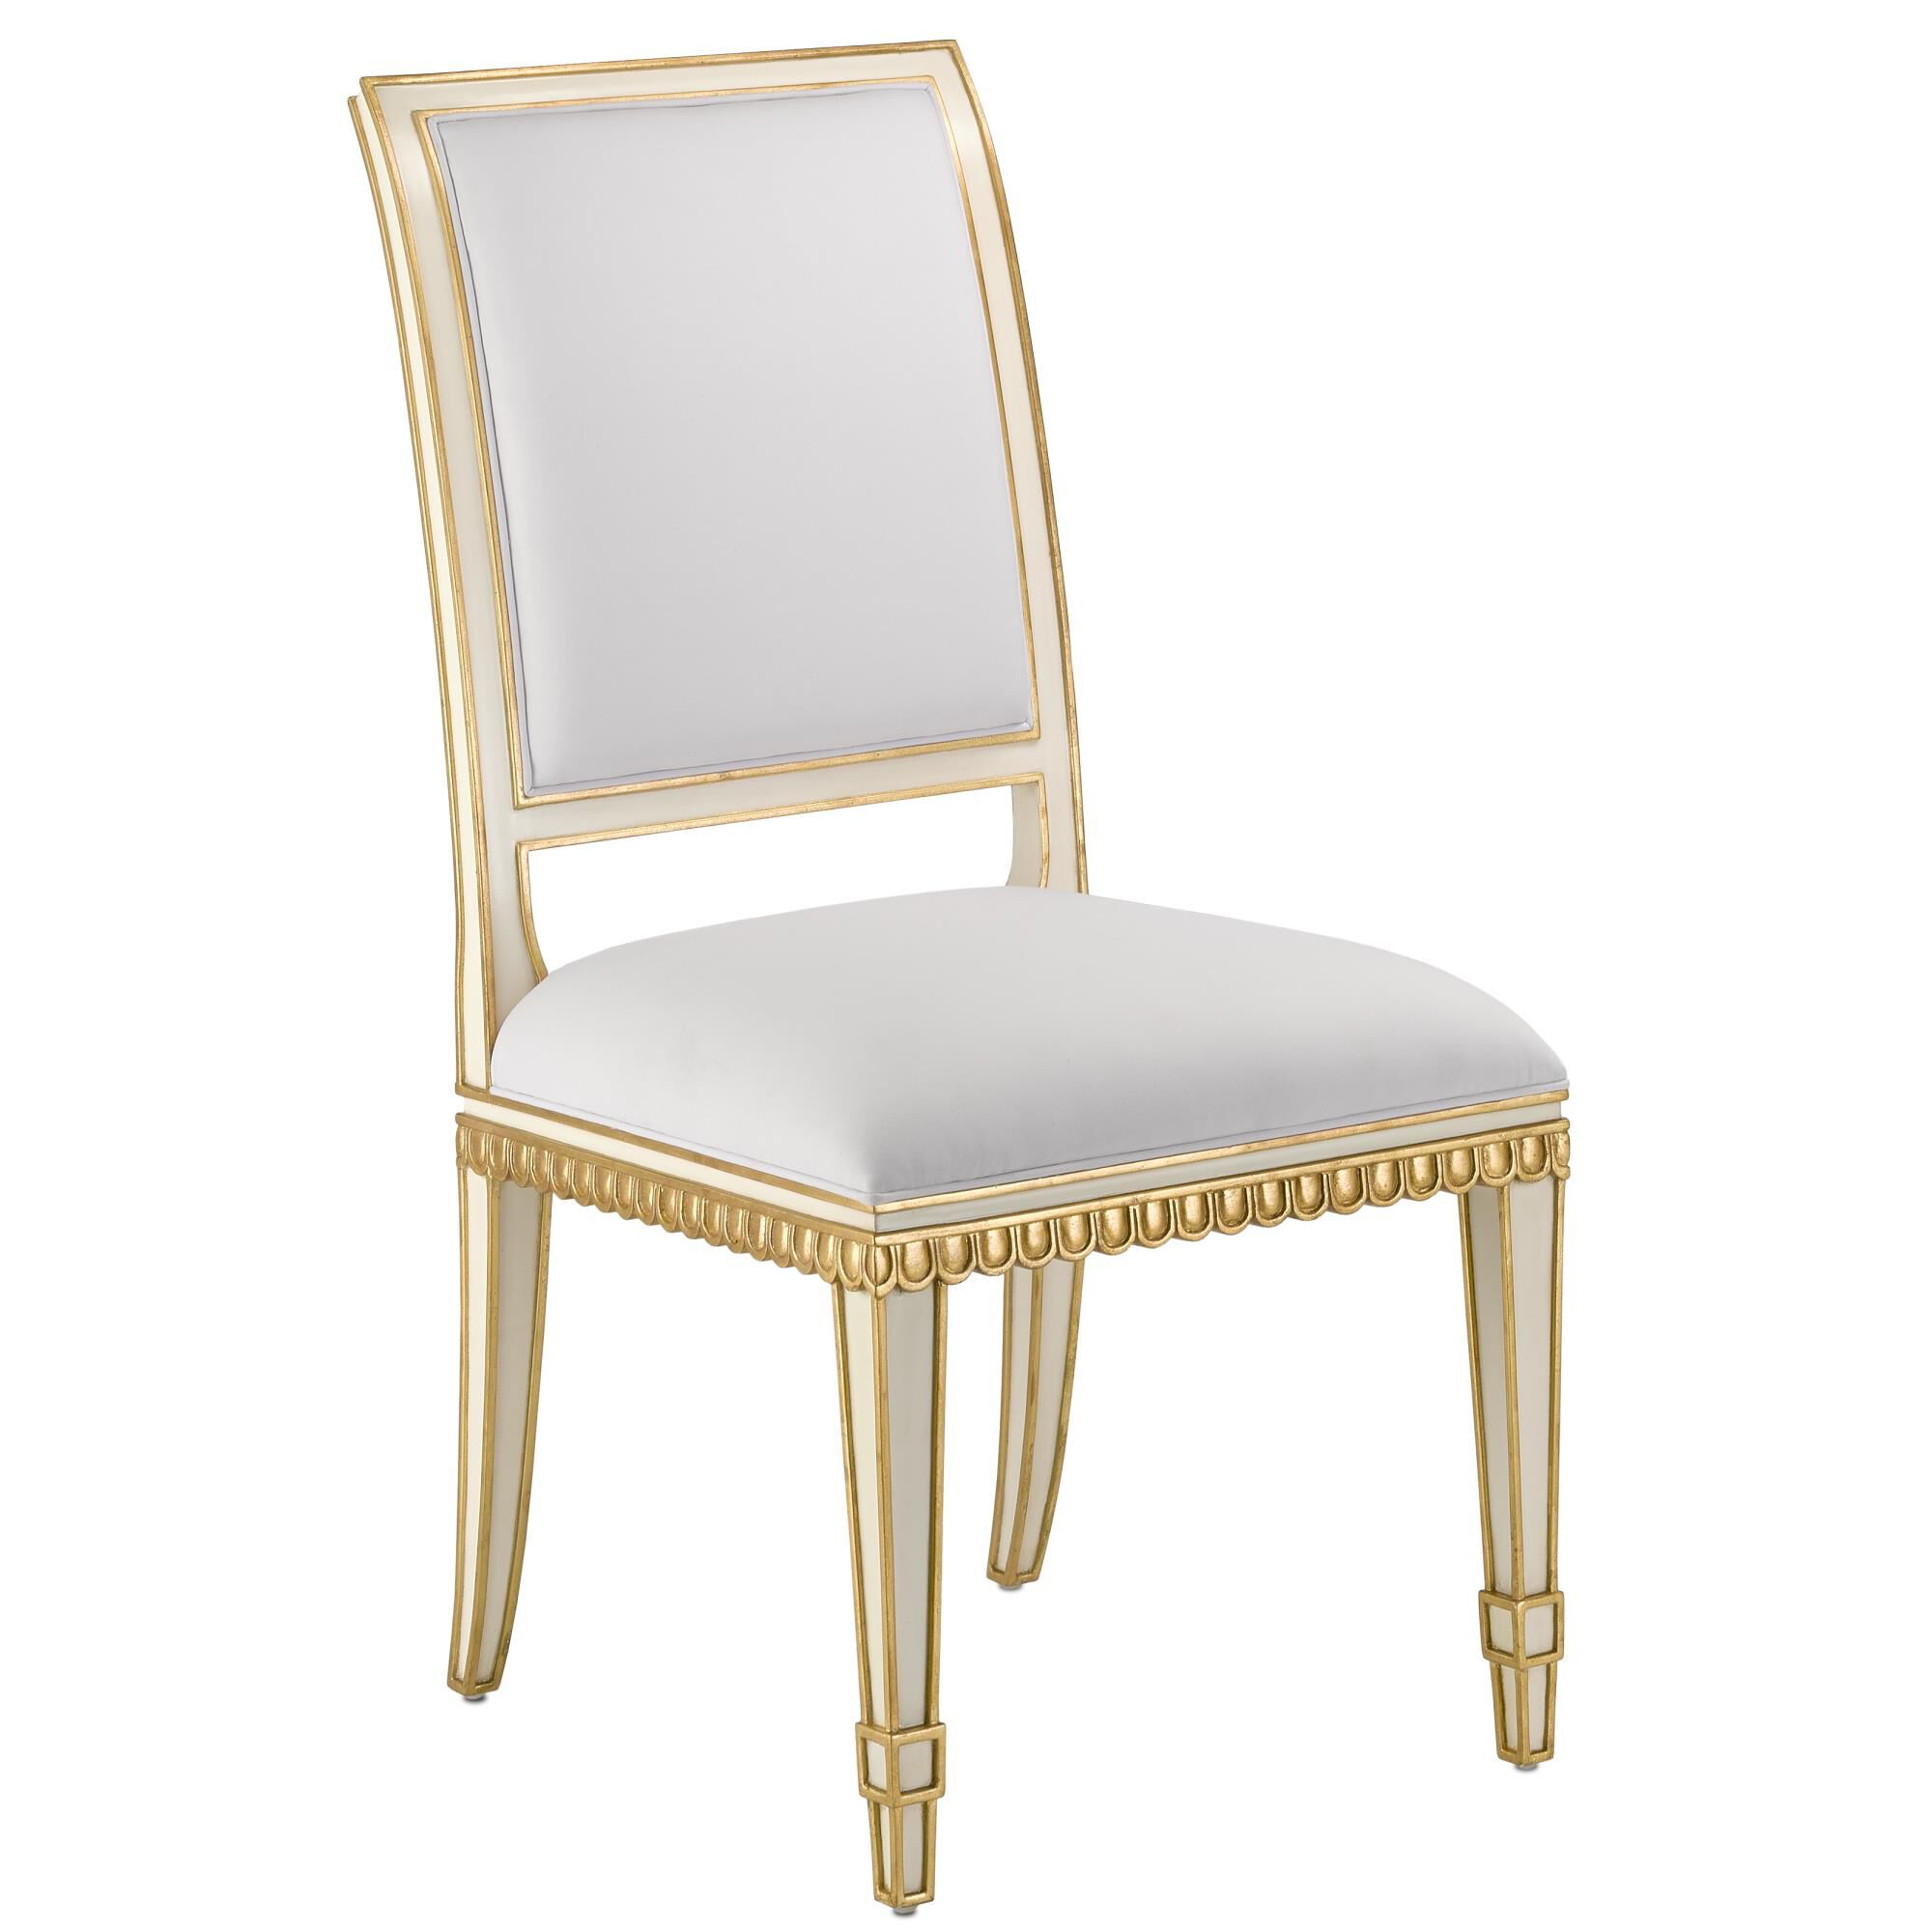 Currey and Company Ines Dining Chair Ines - 7000-0151 - Traditional